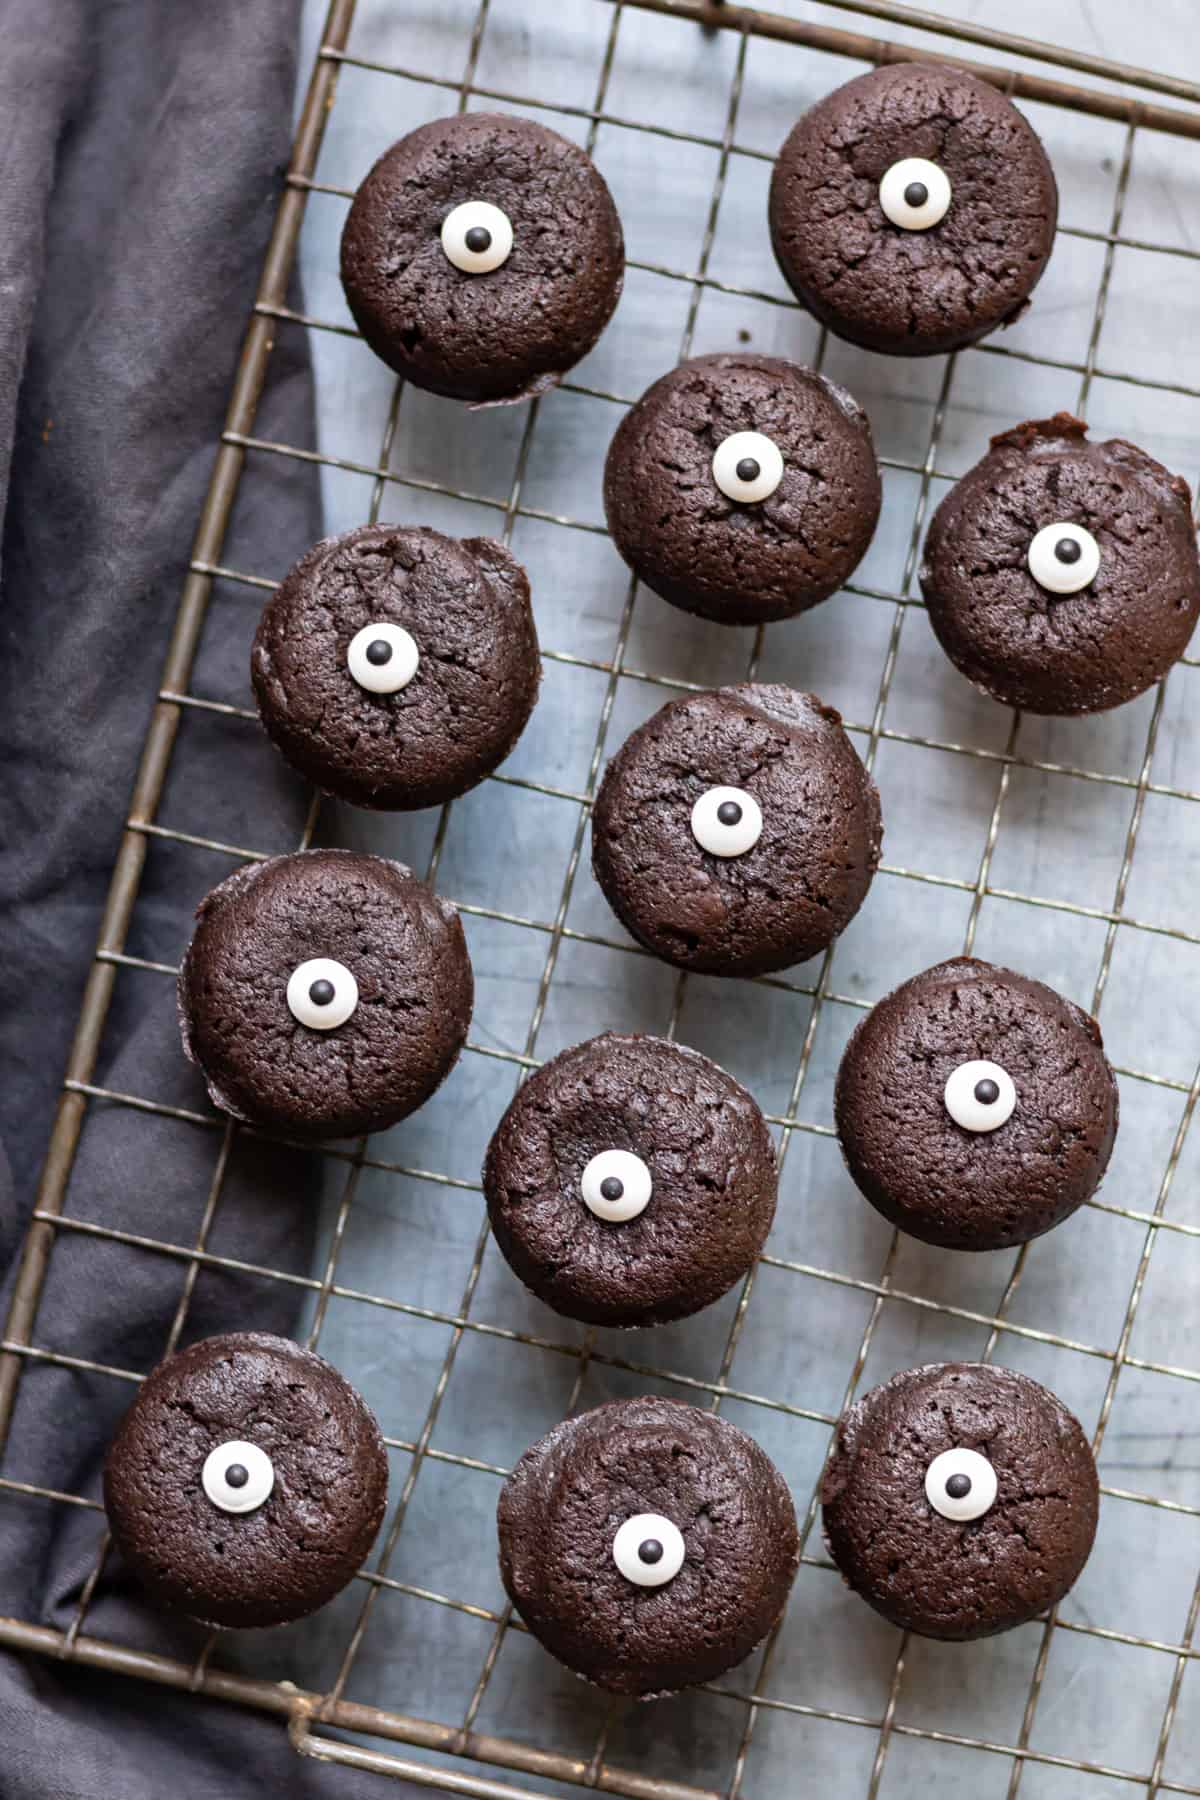 A cooling rack with brownie bites topped with candy eyeballs.